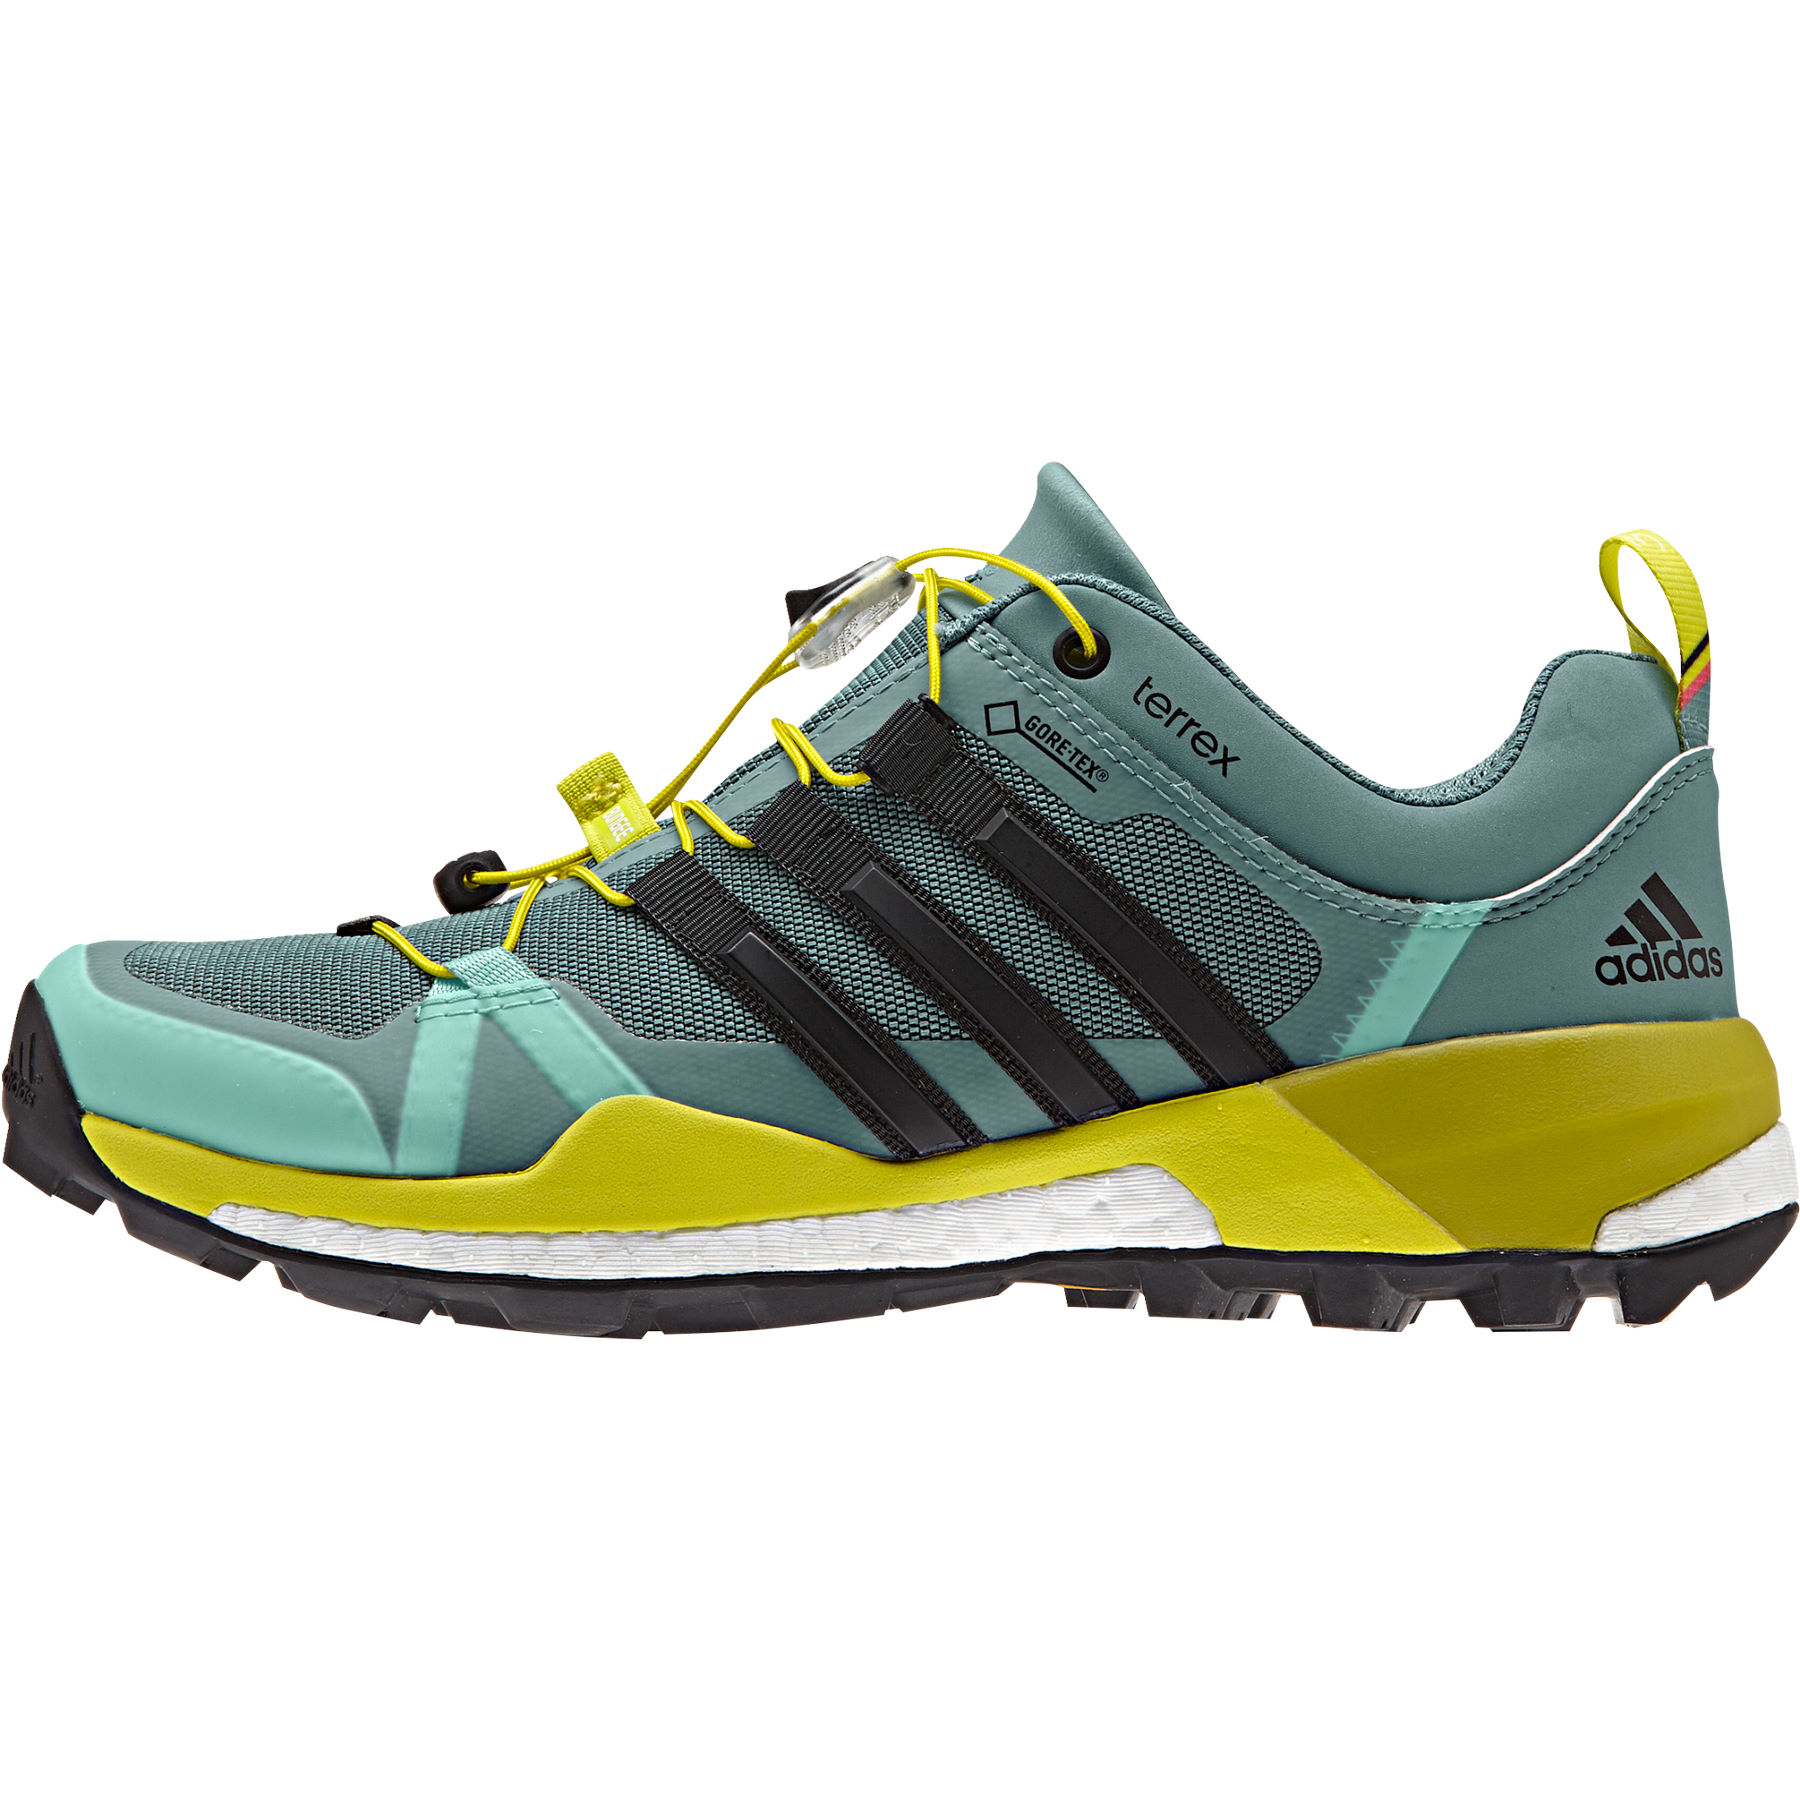 adidas women 39 s terrex skychaser gtx shoes. Black Bedroom Furniture Sets. Home Design Ideas